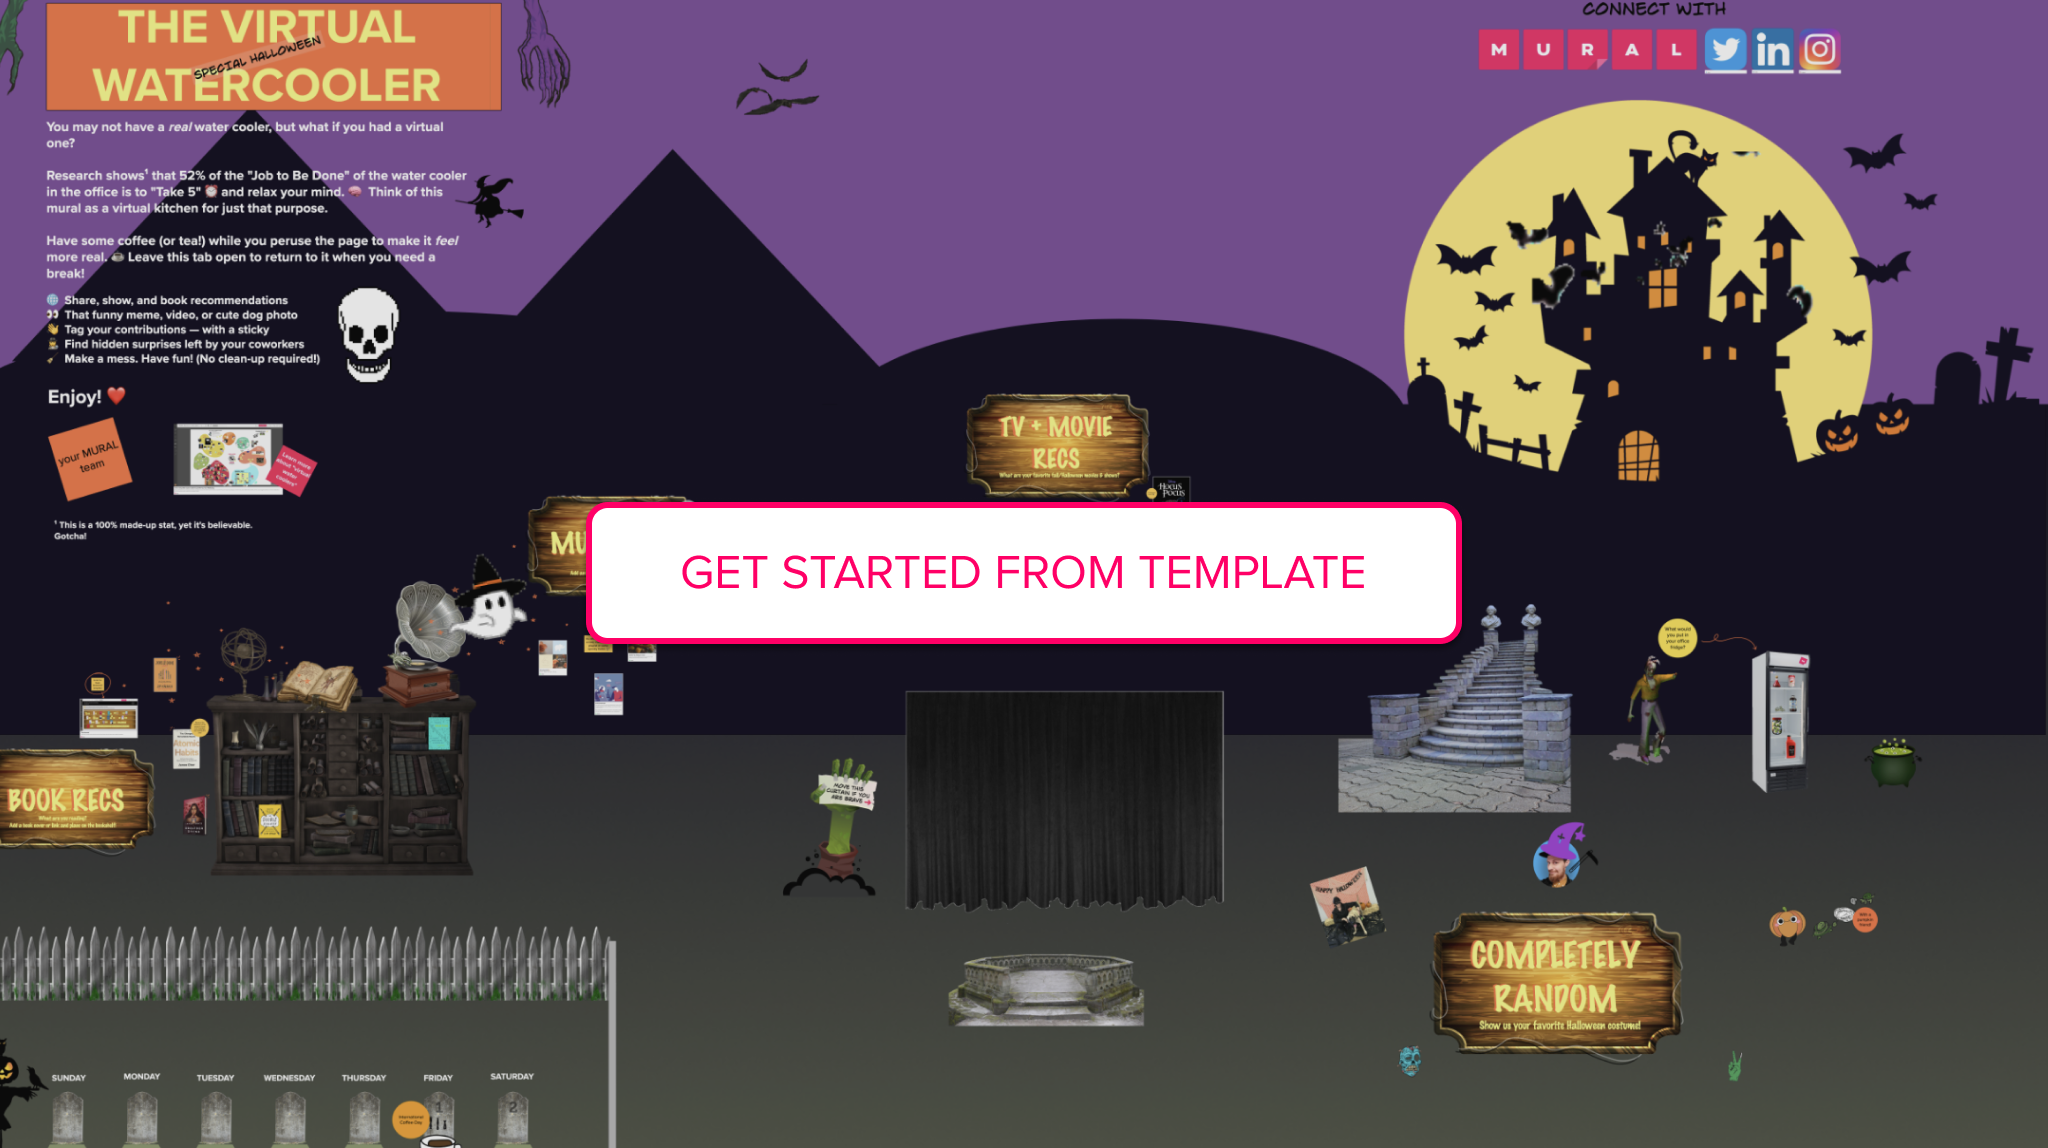 A visualization of the Halloween MURAL template and a call to action to click the image for the MURAL template.